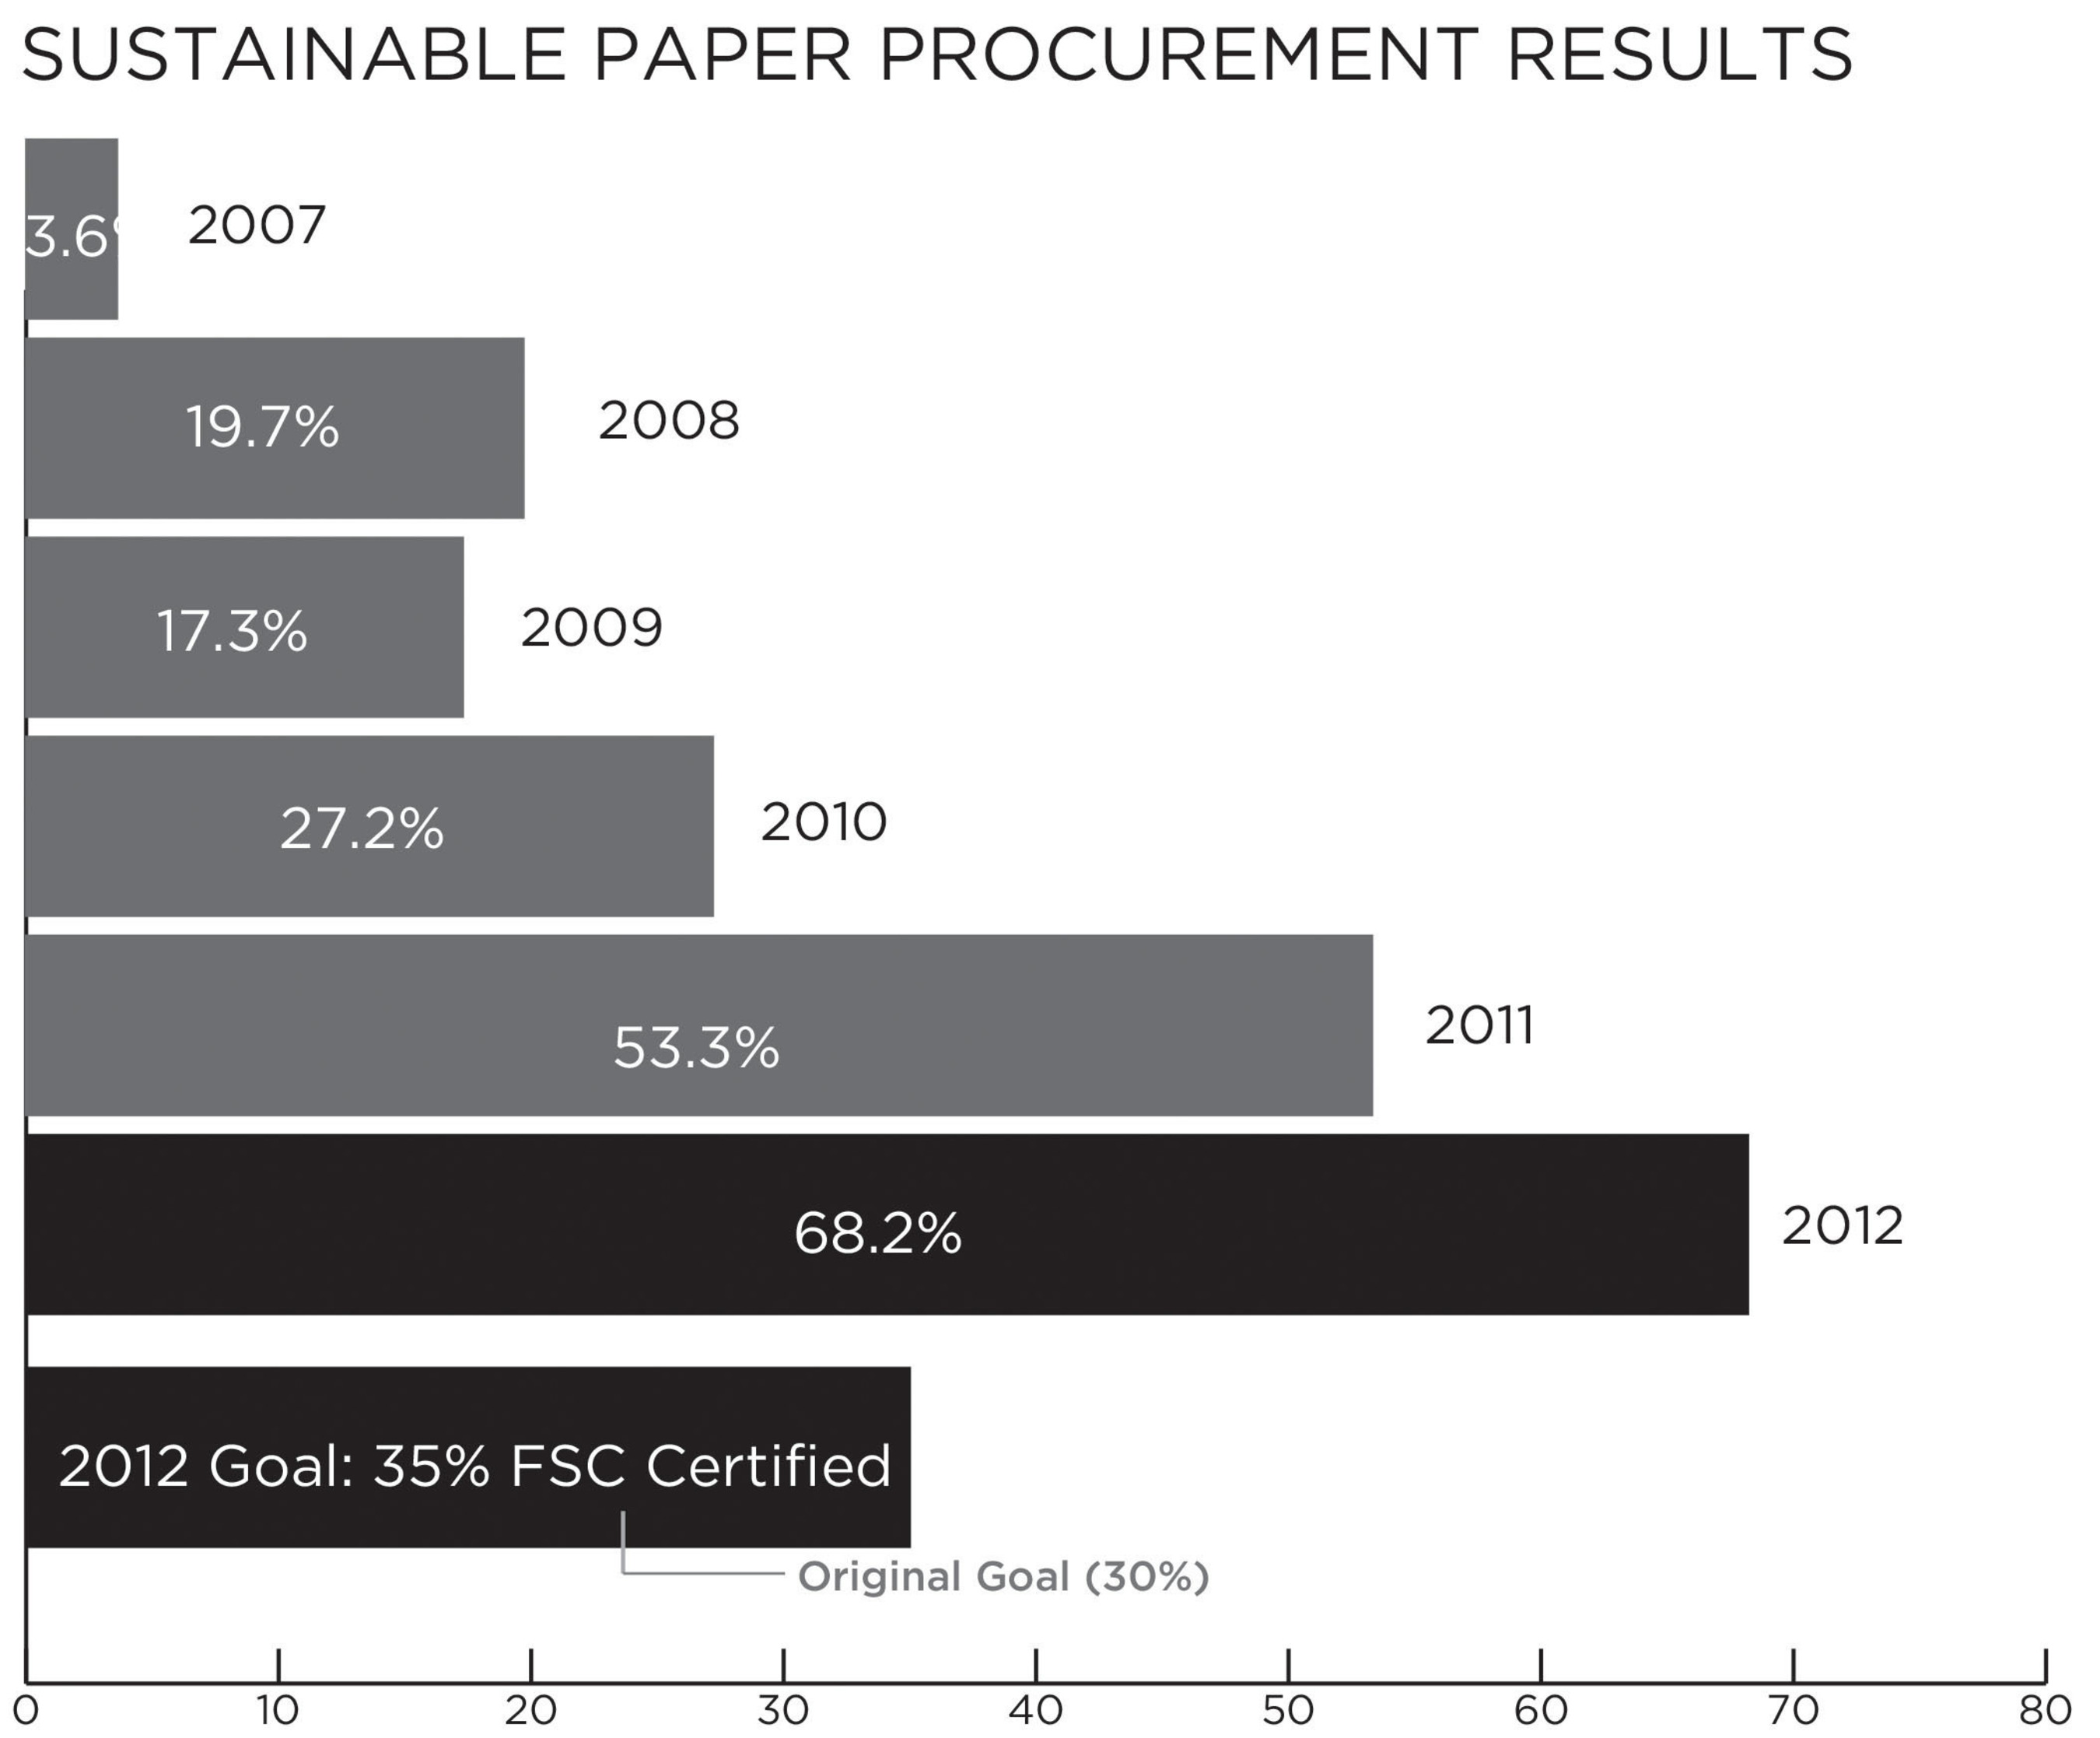 Scholastic Among Leaders in Publishing Industry for Responsible Paper Procurement with 68.2% FSC-Certified Paper in 2012.  (PRNewsFoto/Scholastic Inc.)